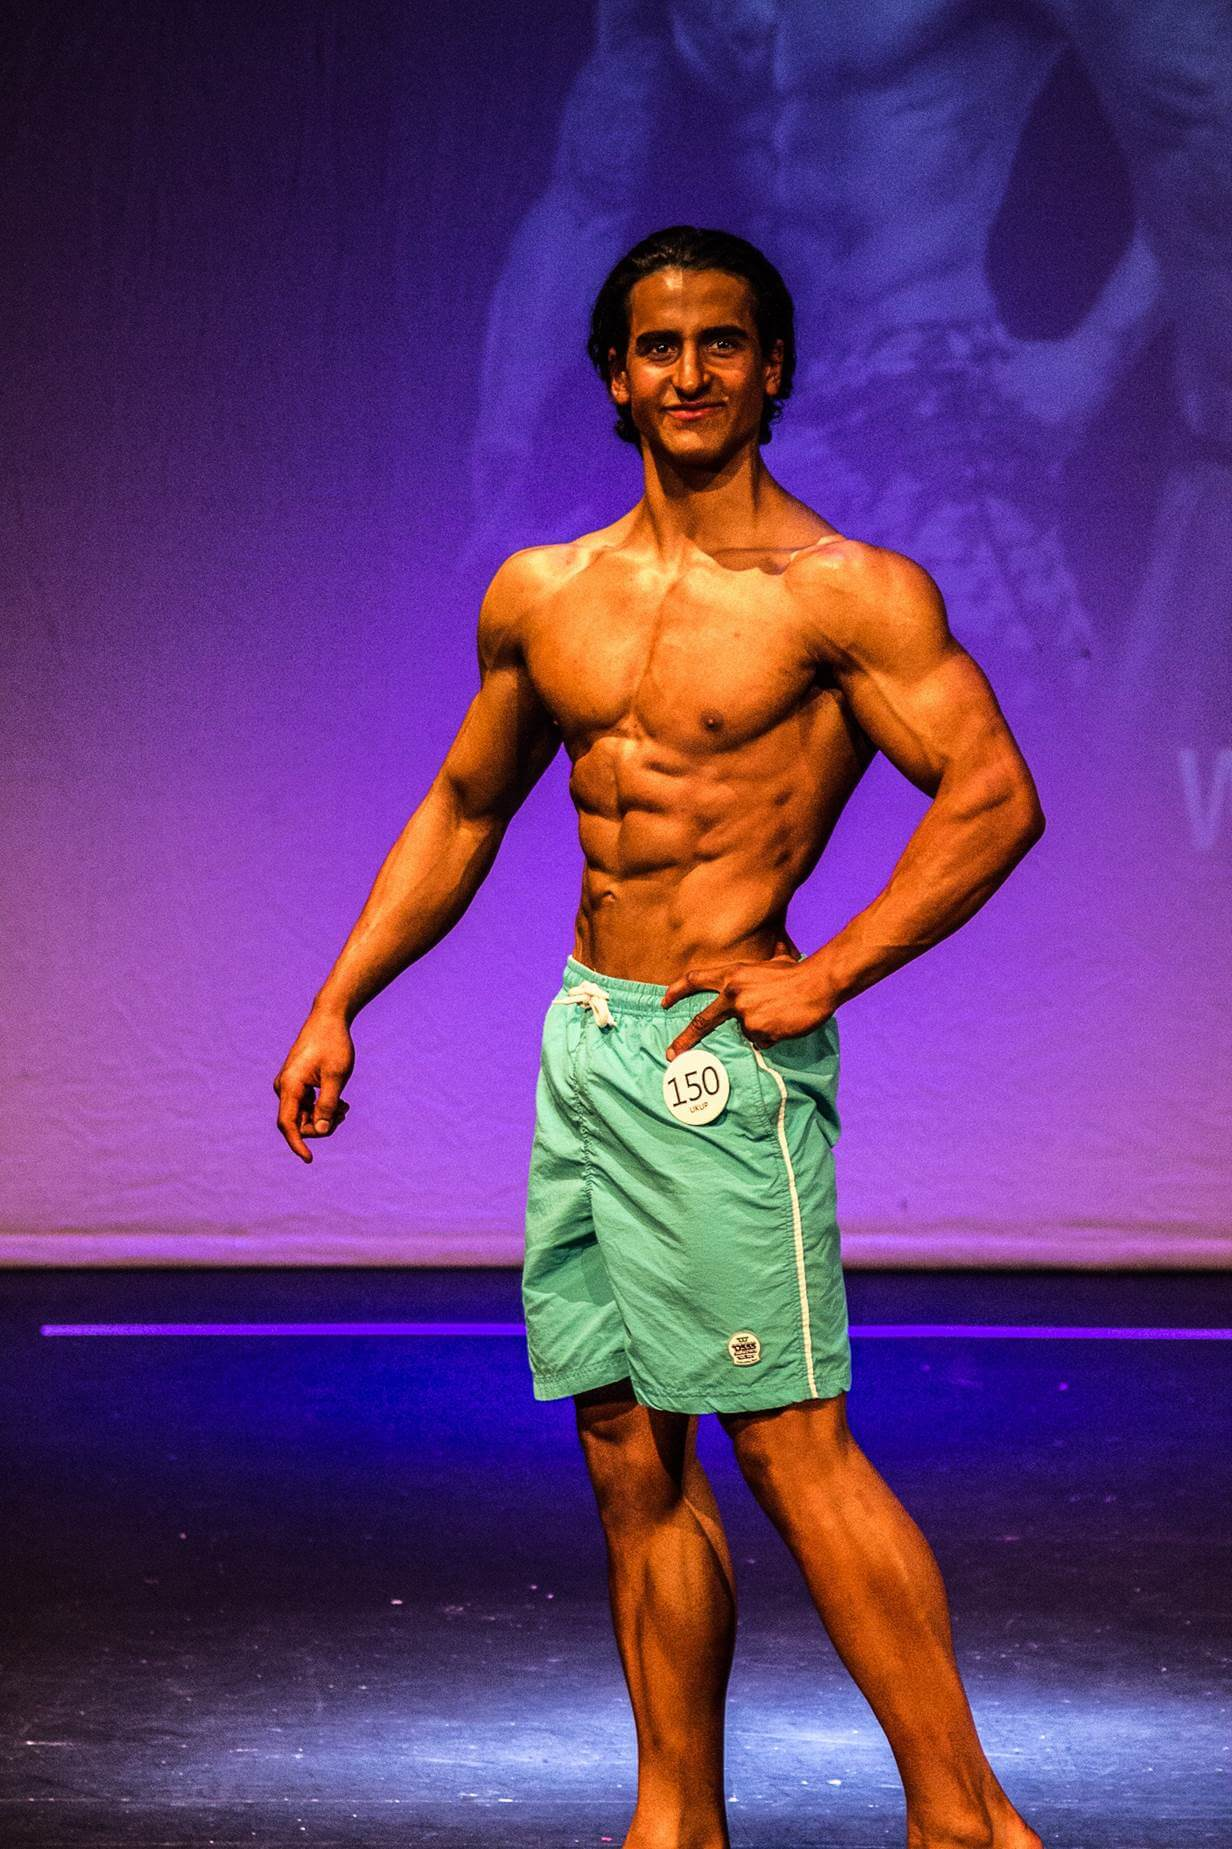 Bodybuilding training – Not for the faint hearted!